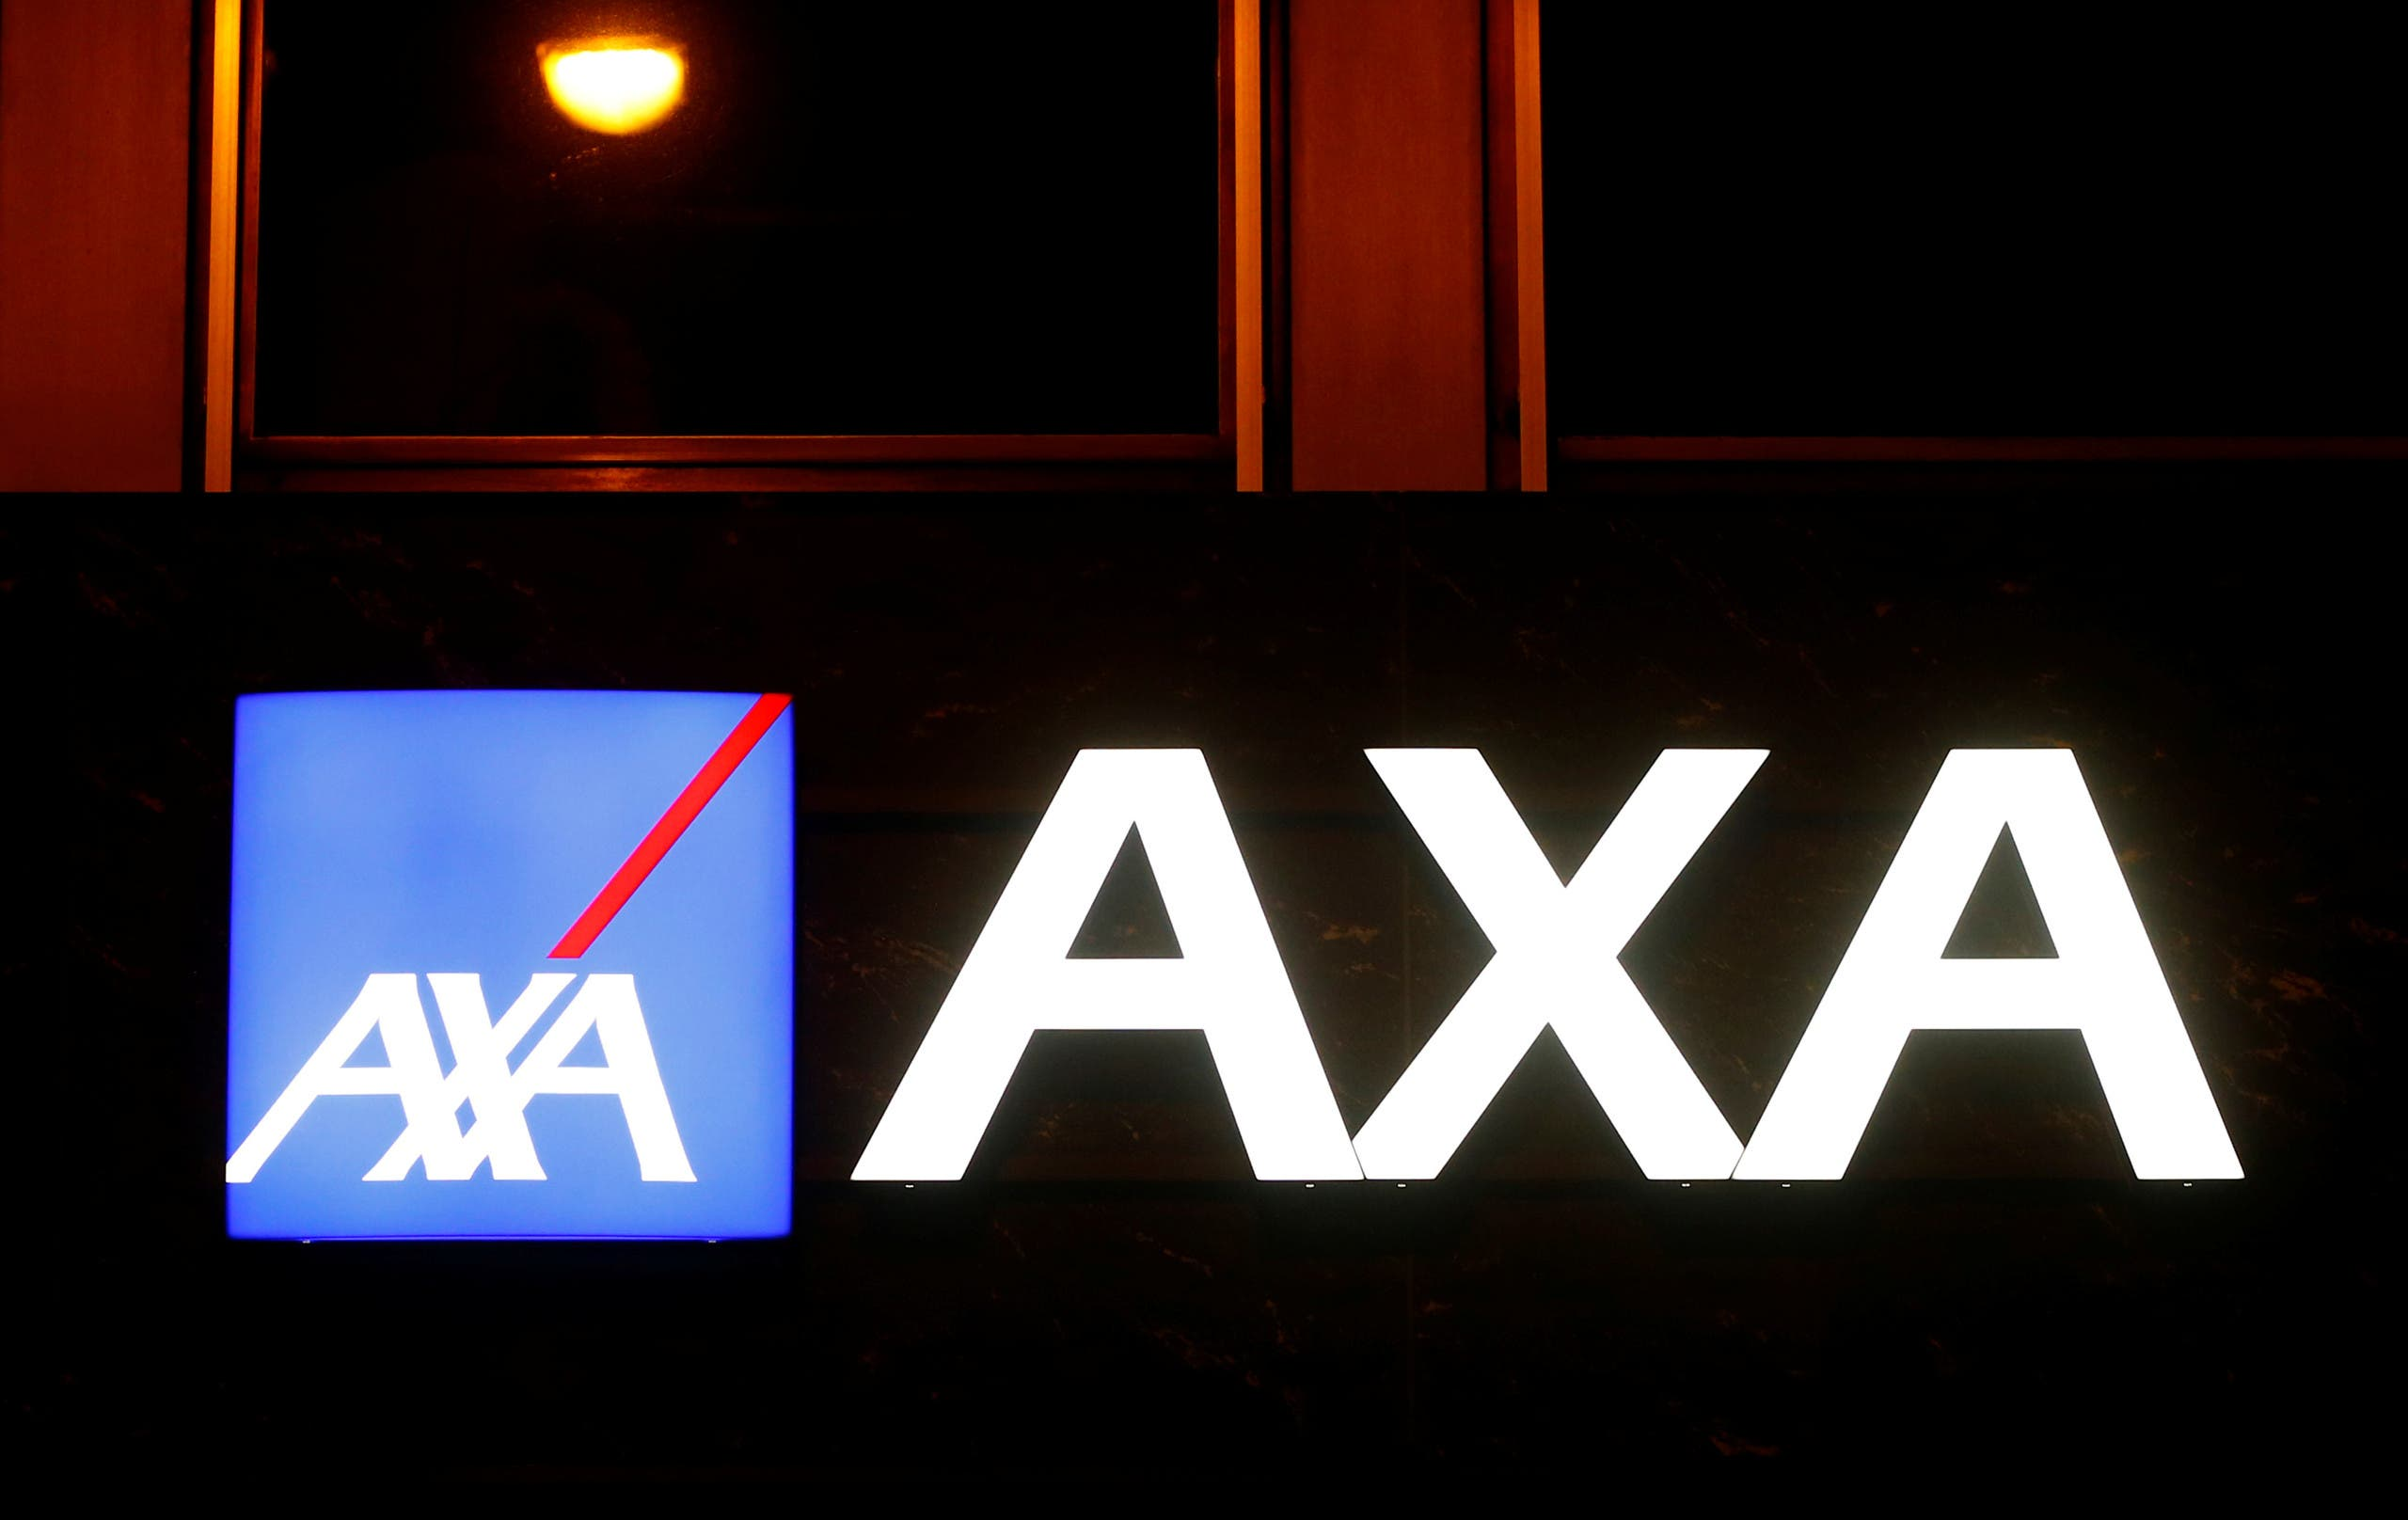 The logo of AXA insurance. (File photo: Reuters)